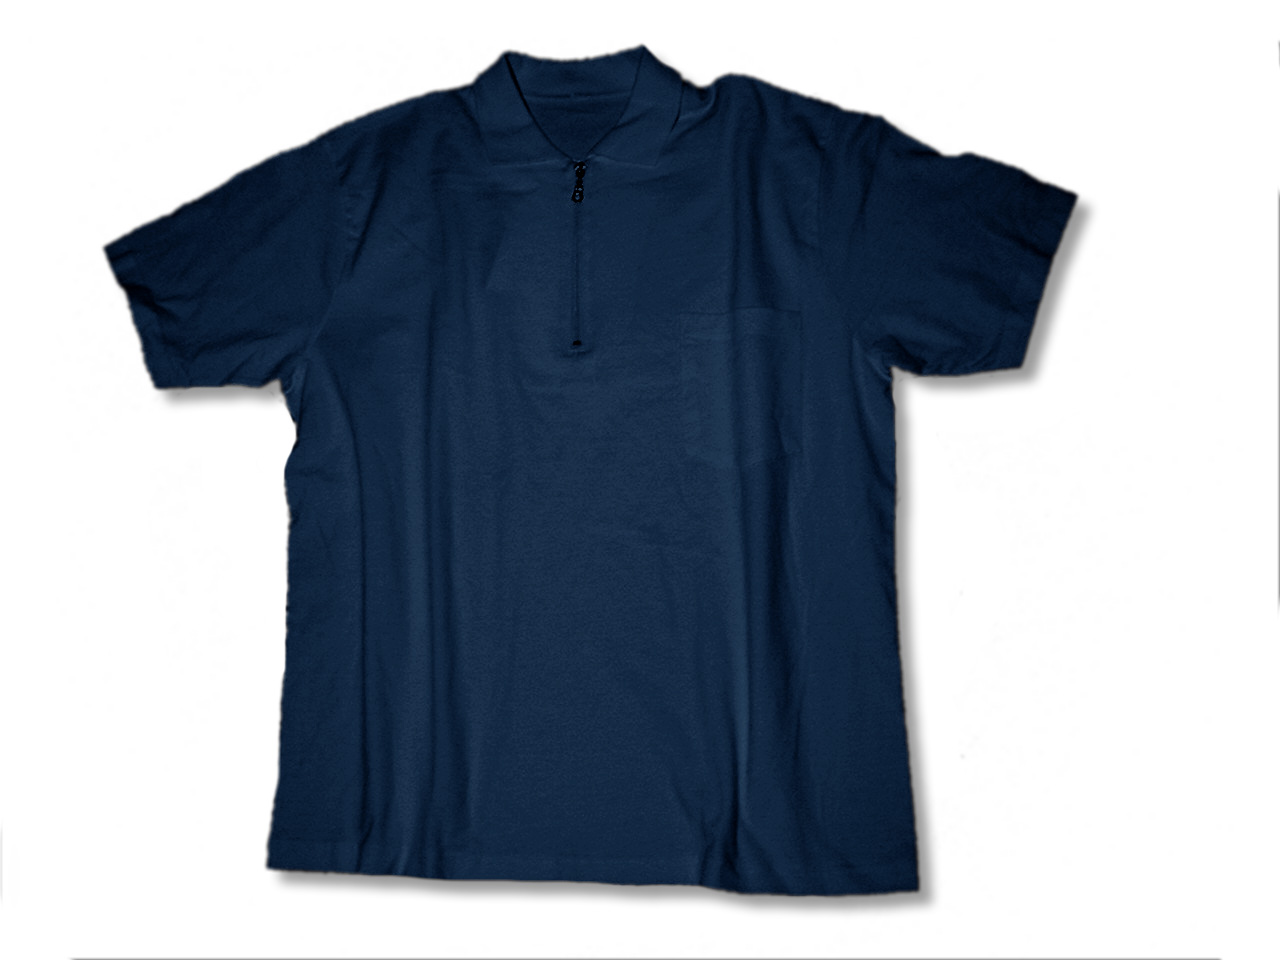 Oxid eshop 4 polo t shirt with chest pocket navyblue for Polo t shirts with pocket online